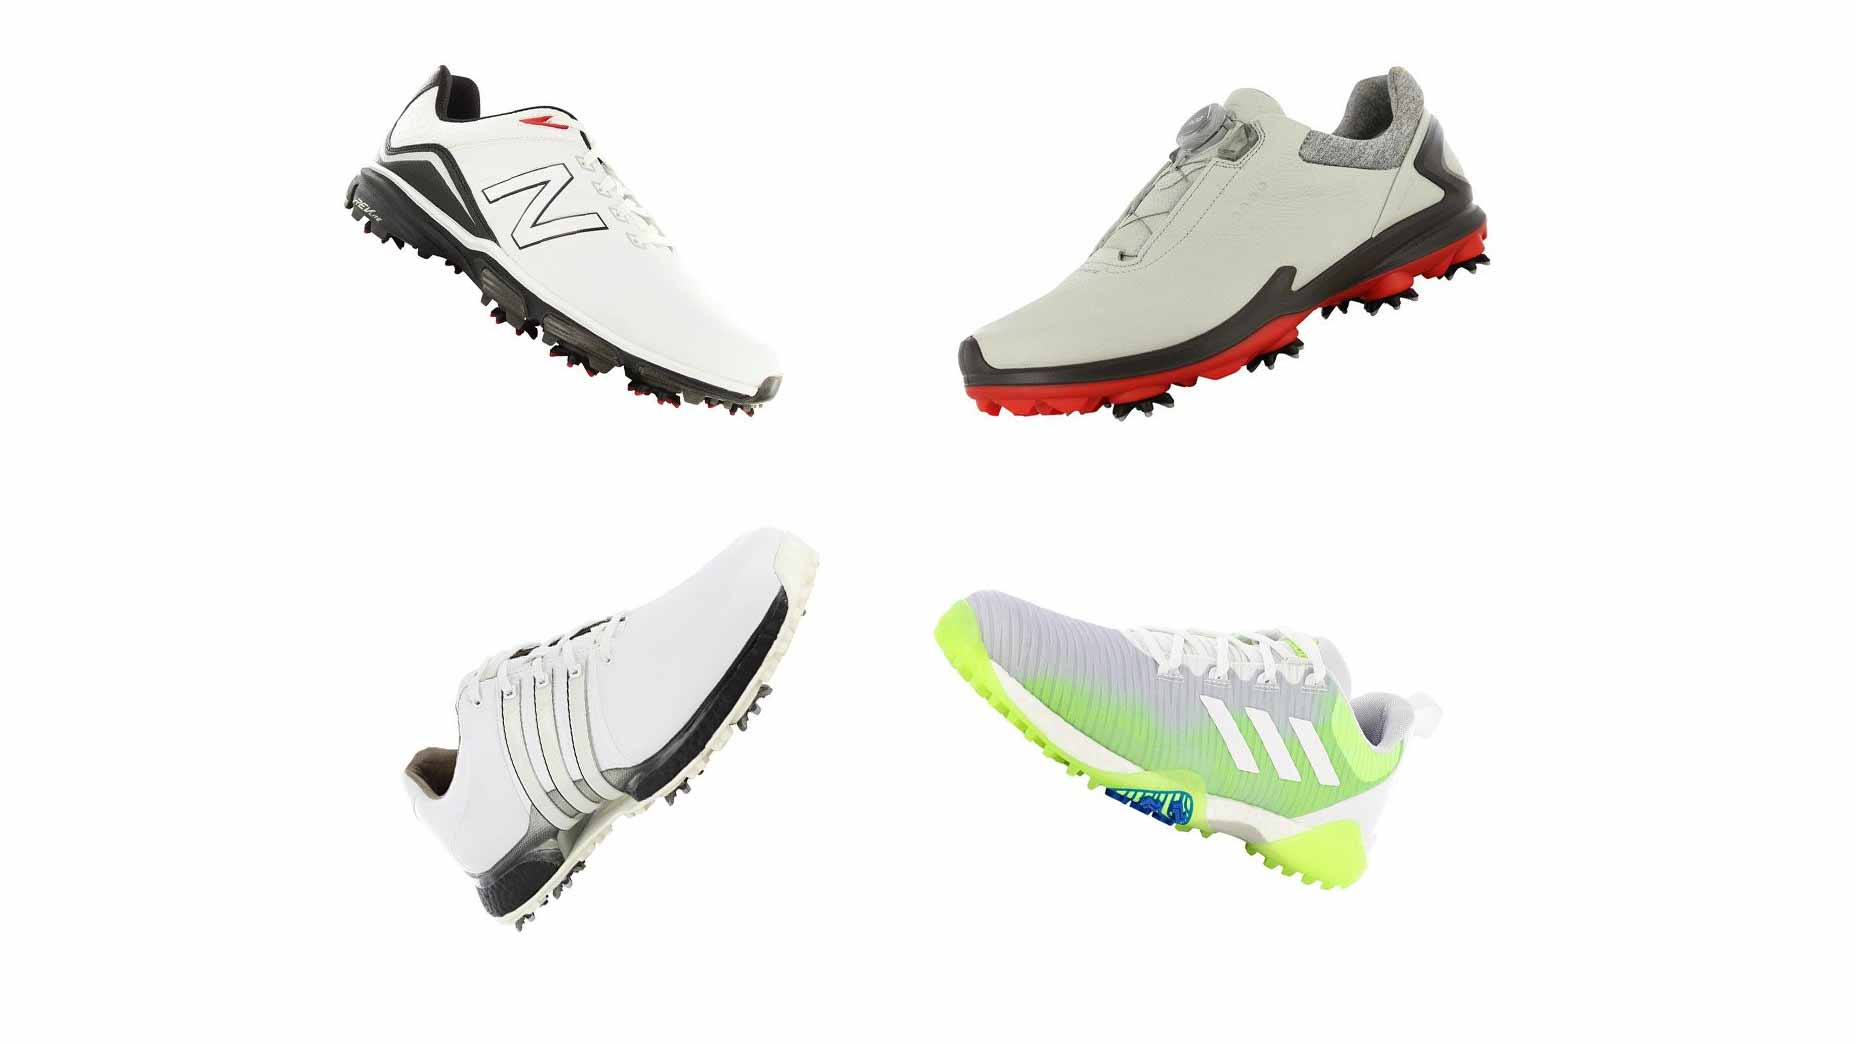 5 waterproof golf shoes perfect for